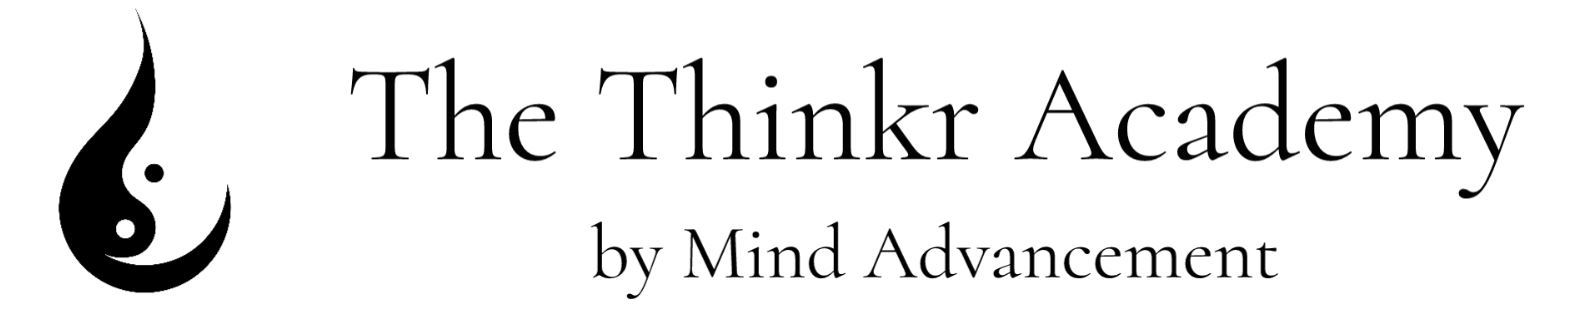 The Thinkr Academy by Mind Advancement